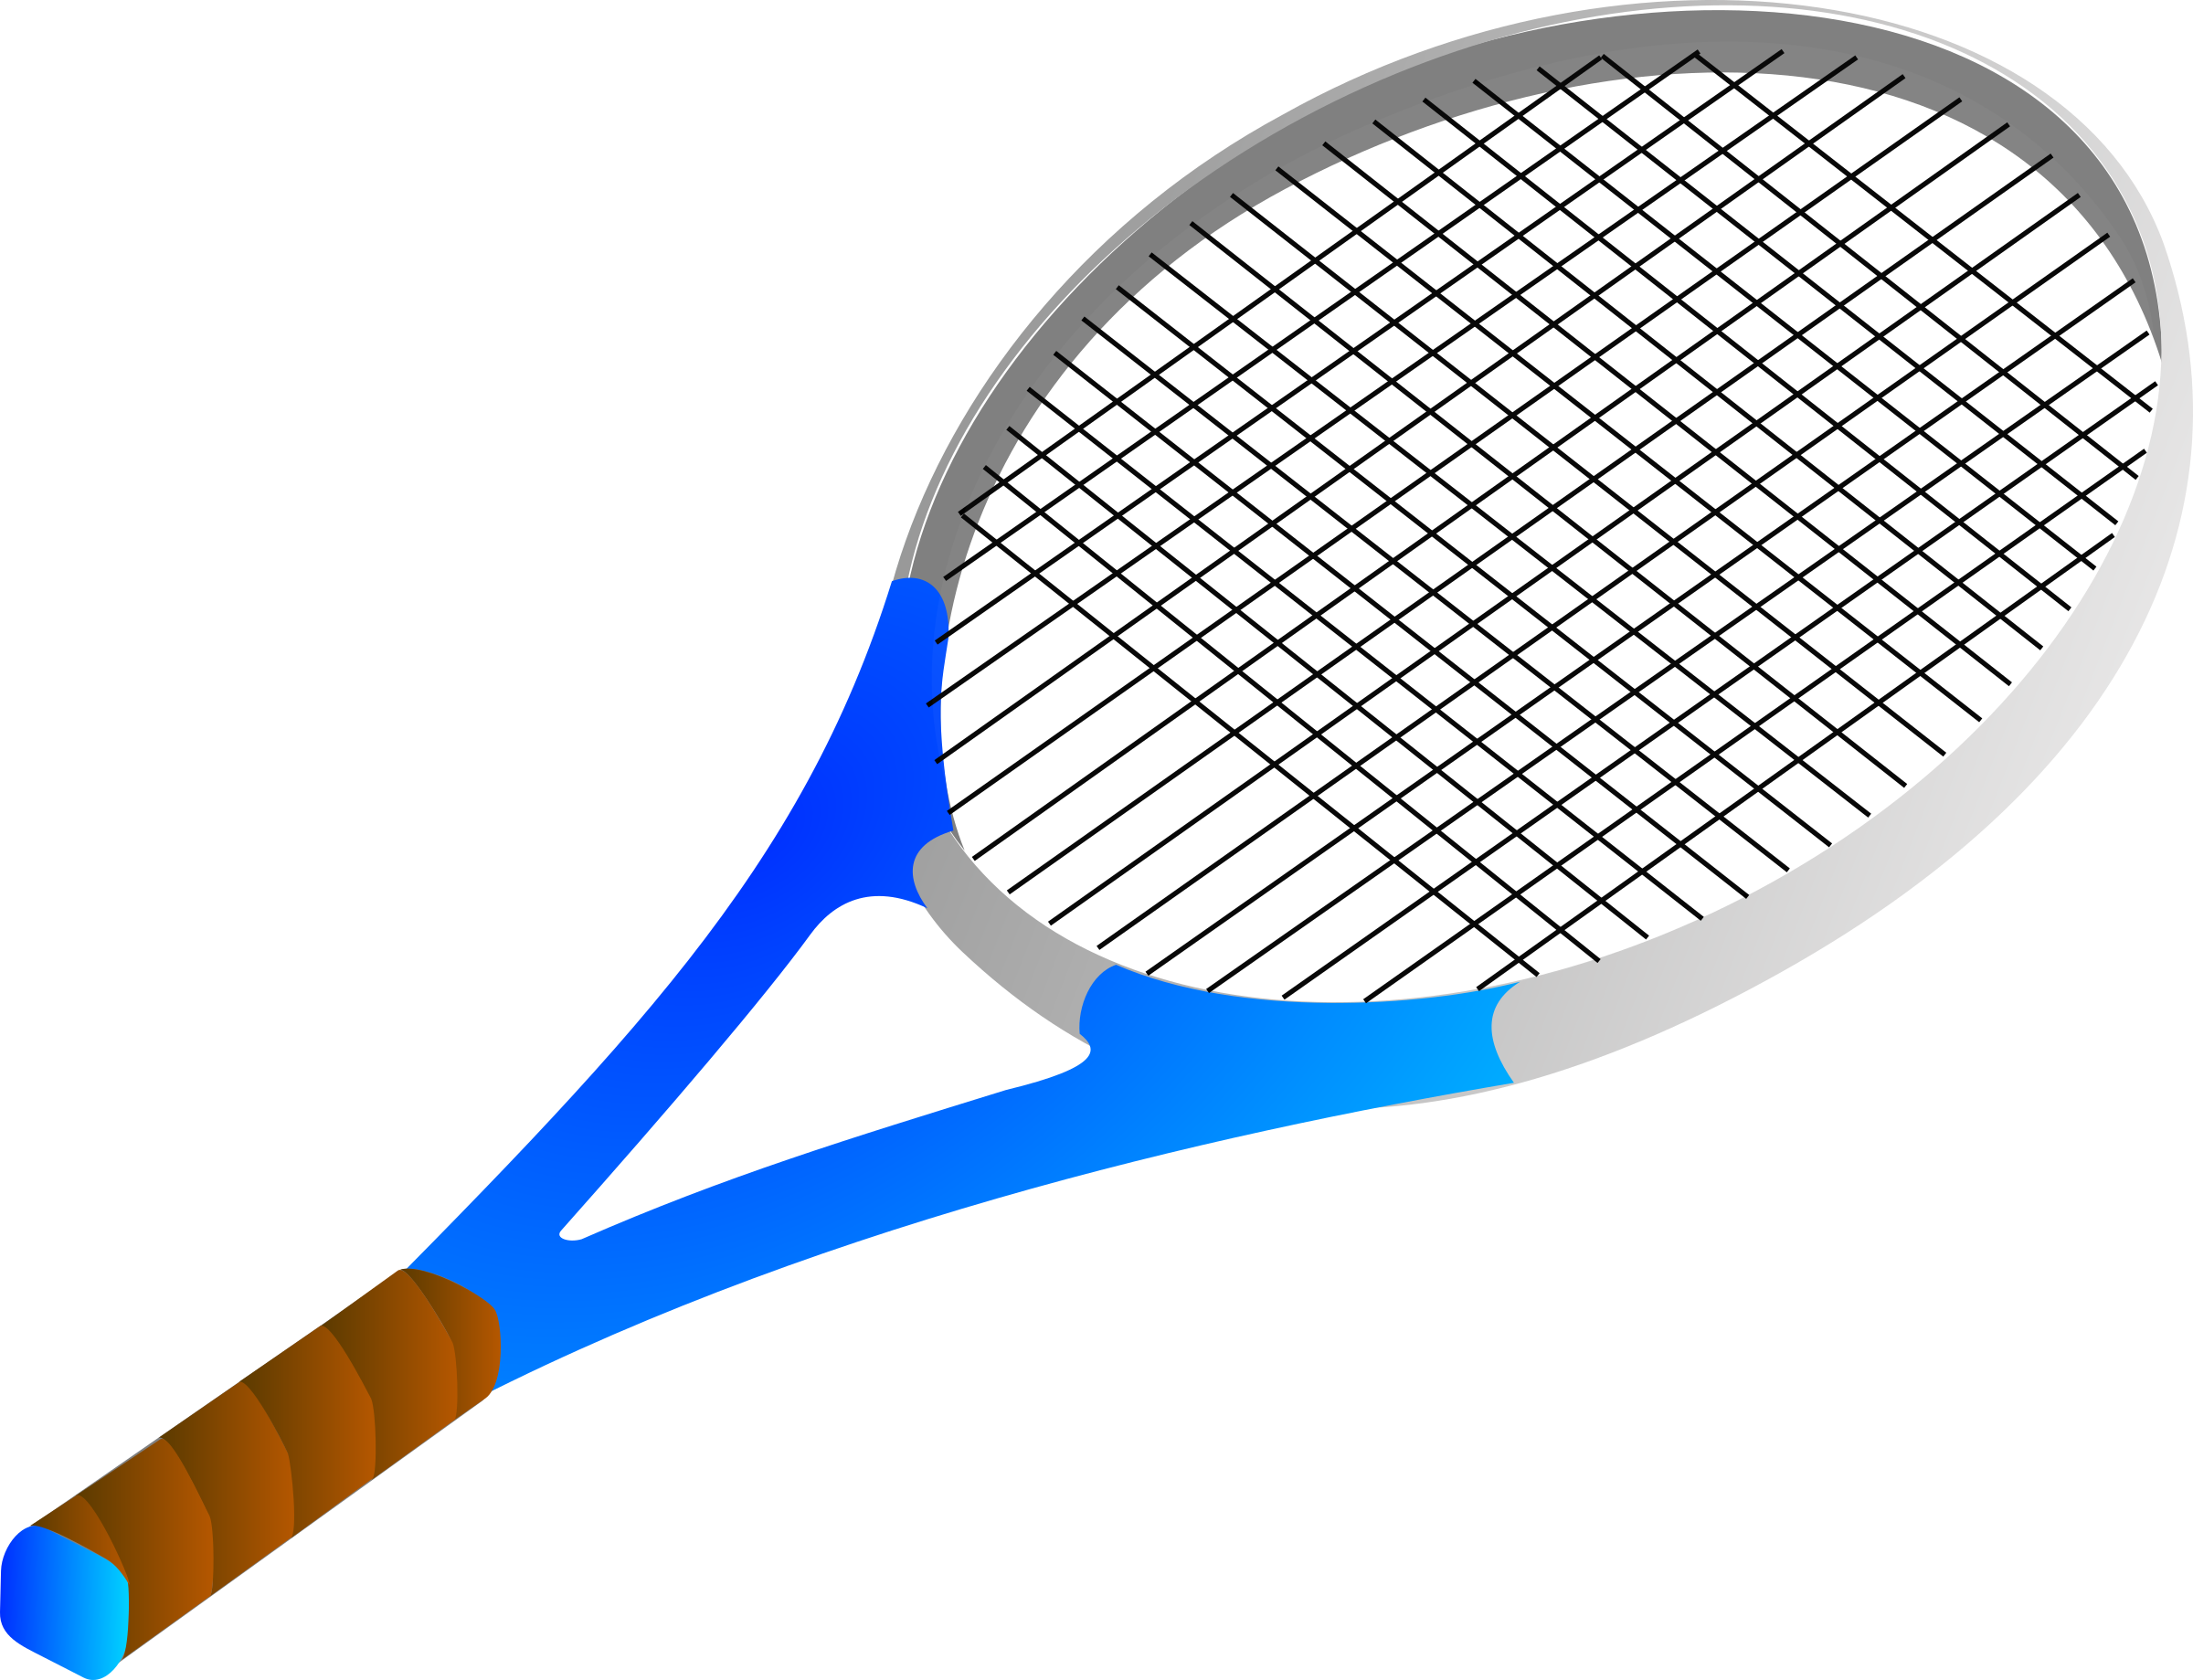 Tennis racket by Anonymous